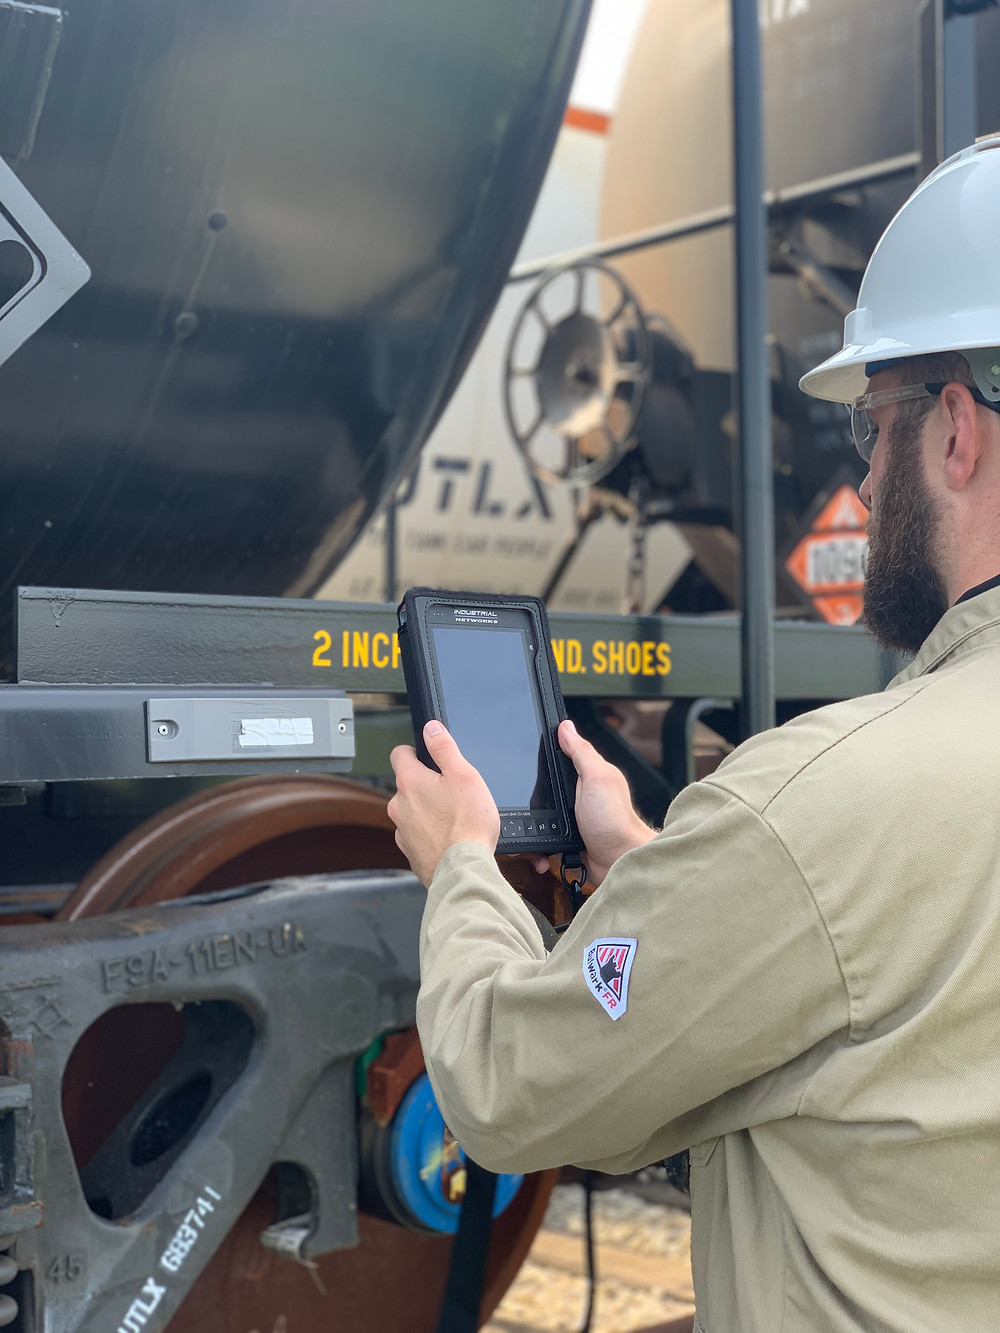 A railway operator reprograms an Automatic Equipment Identification (AEI) Tag mounted to a railcar.